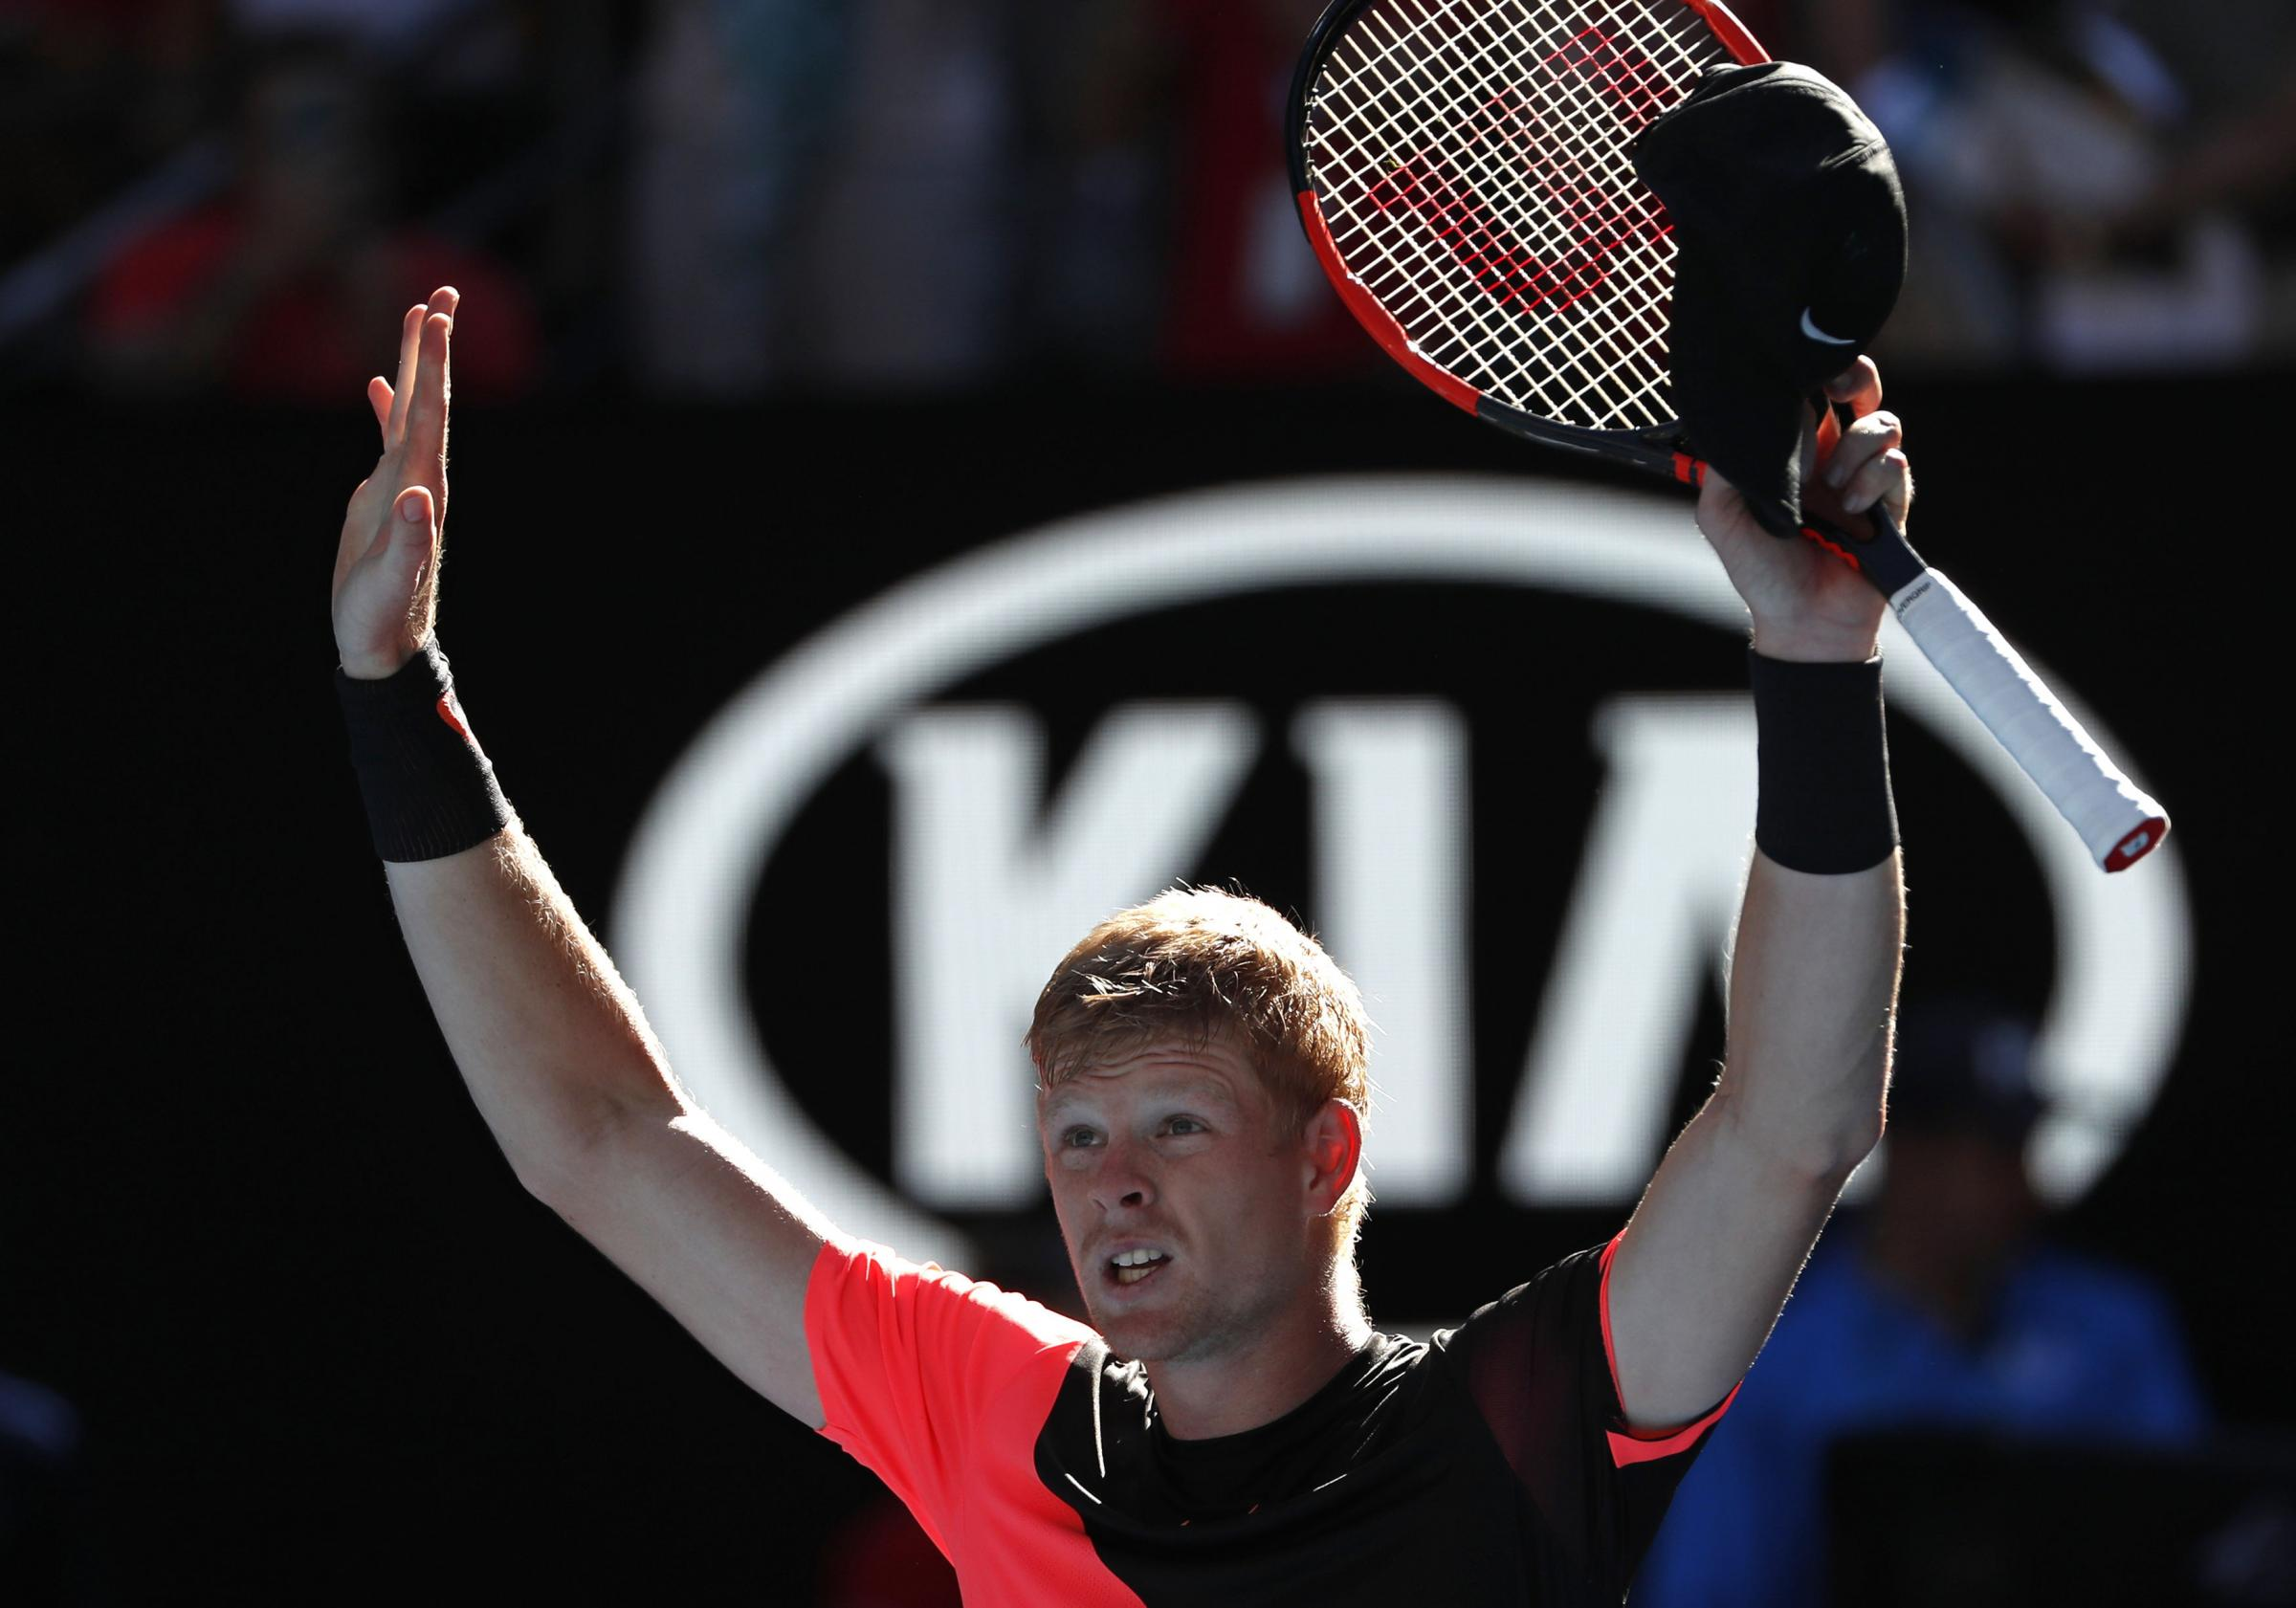 Kyle Edmund celebrates his win against Grigor Dimitrov